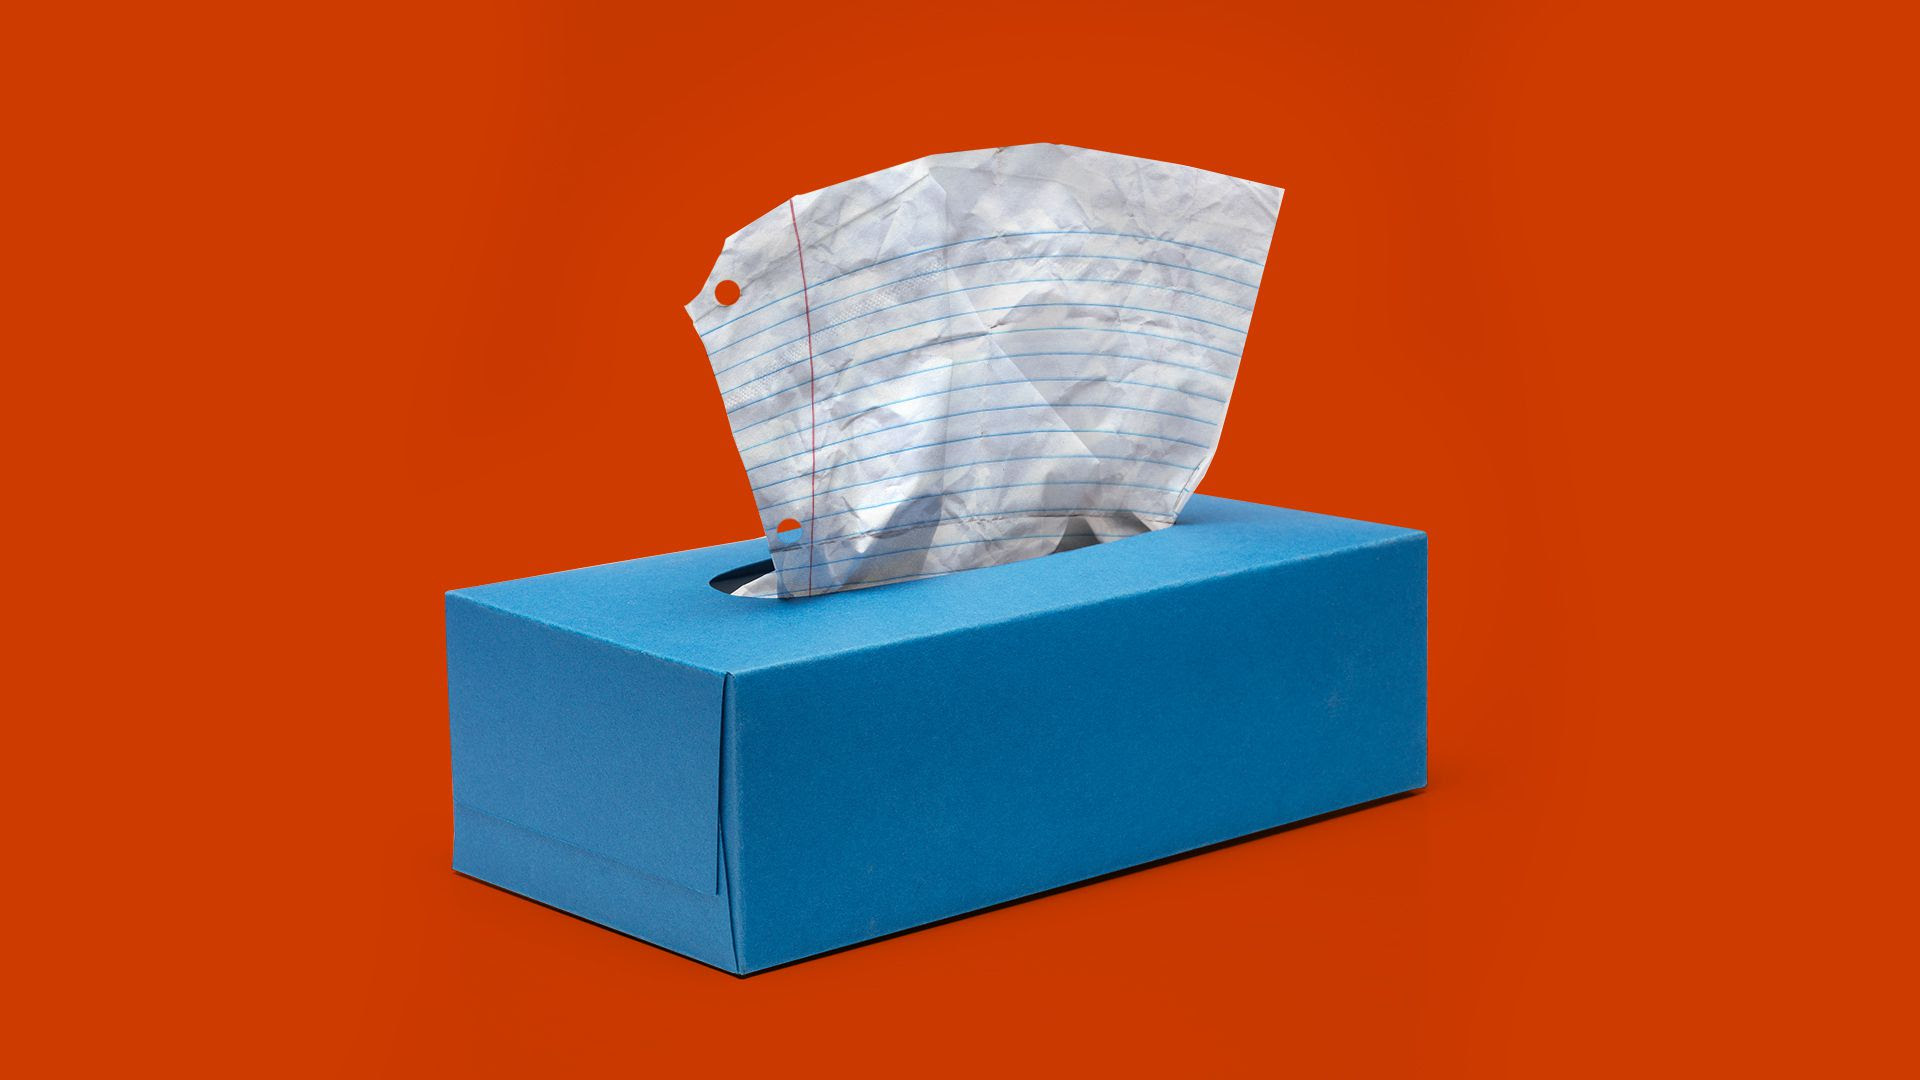 Illustration of a tissue box with ruled paper coming out instead of tissues.